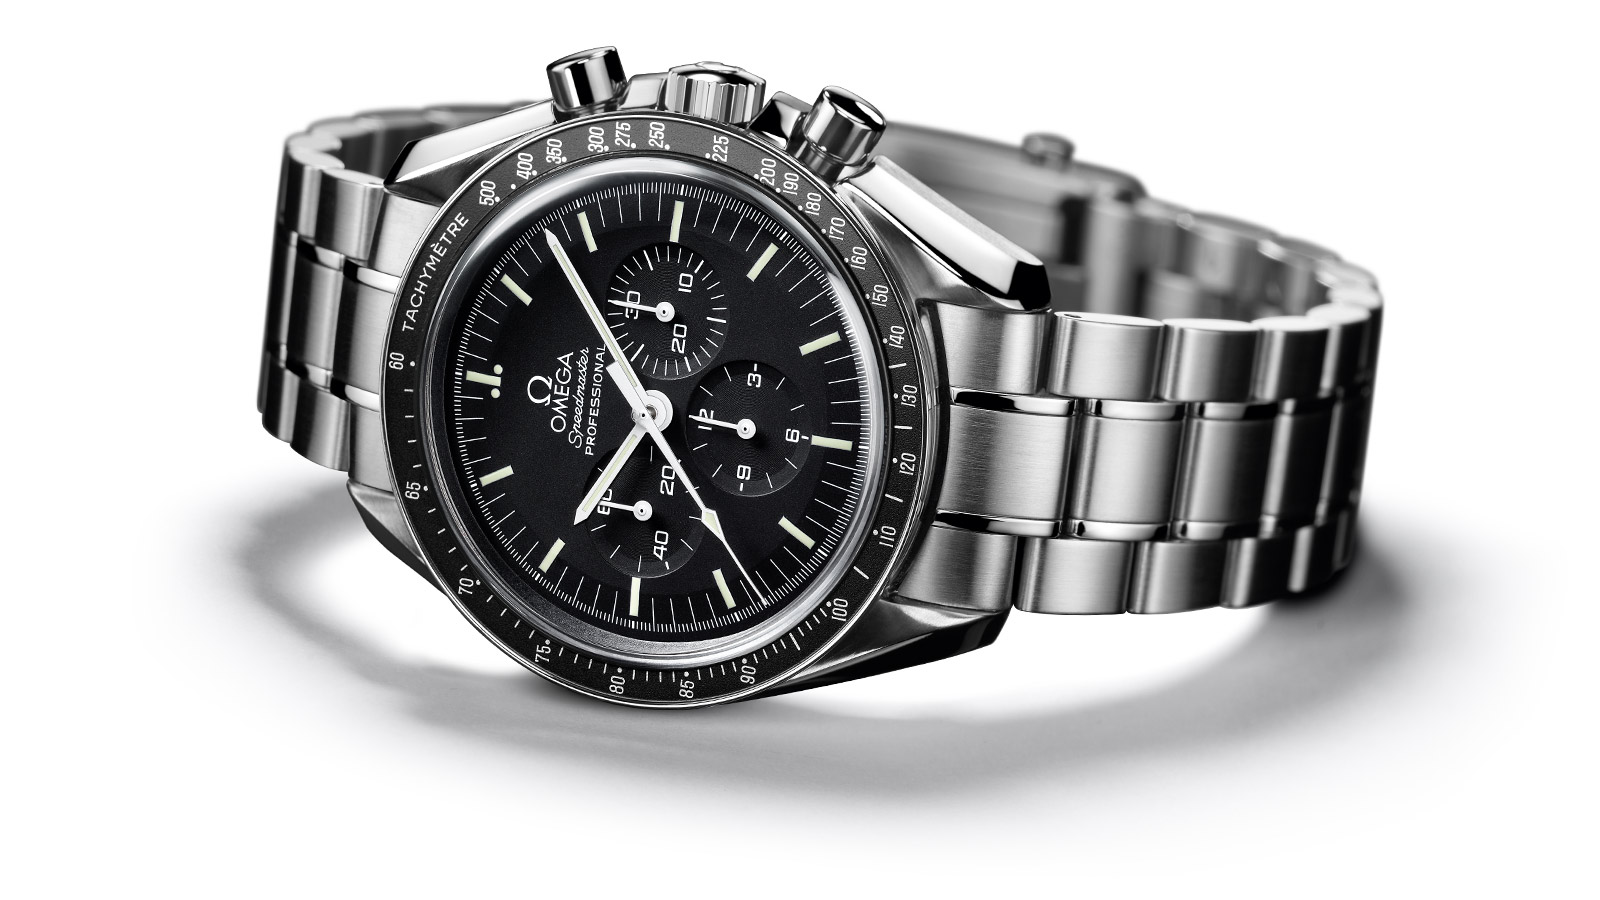 Top 10 Luxury Watches of 2017